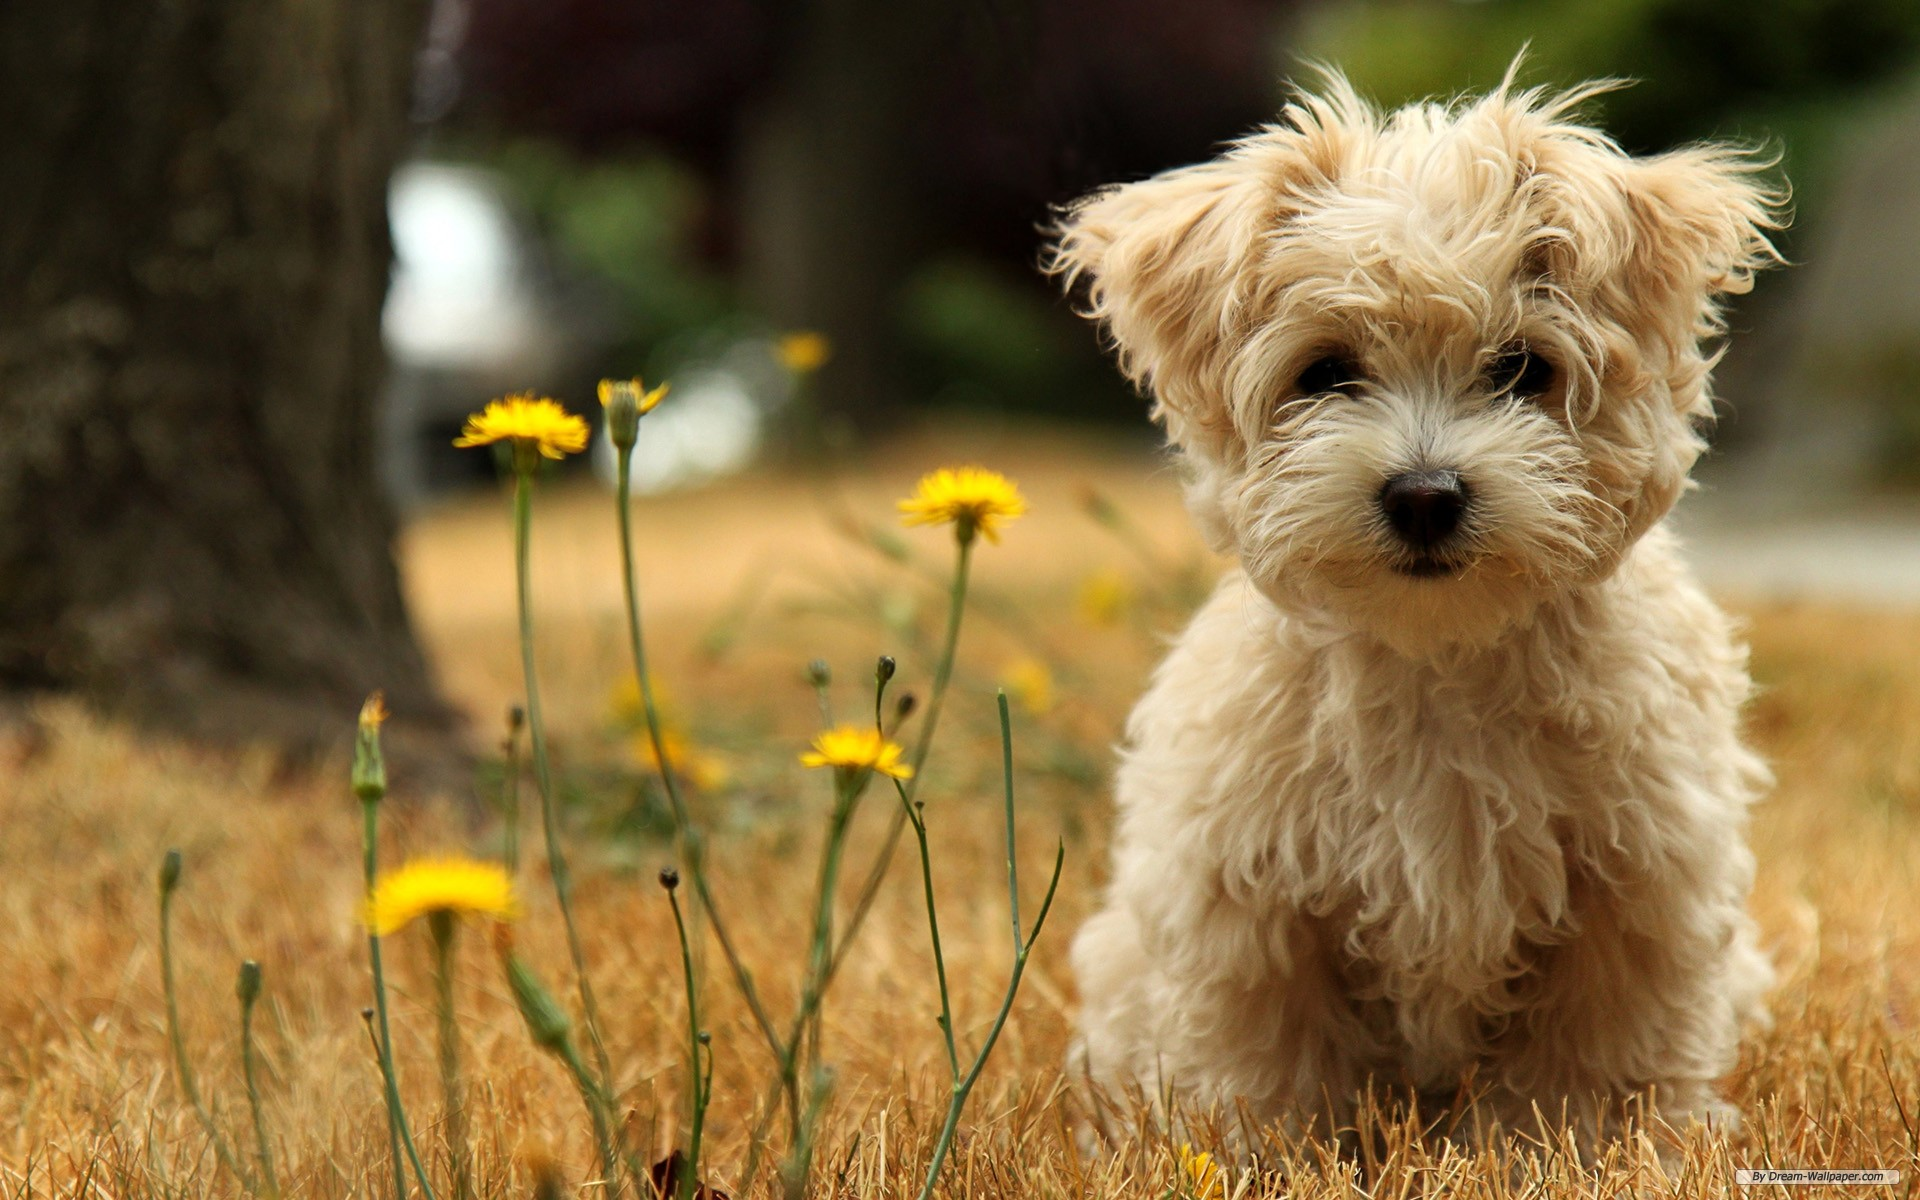 wallpaper cute animal dog backgrounds 1920x1200 1920x1200